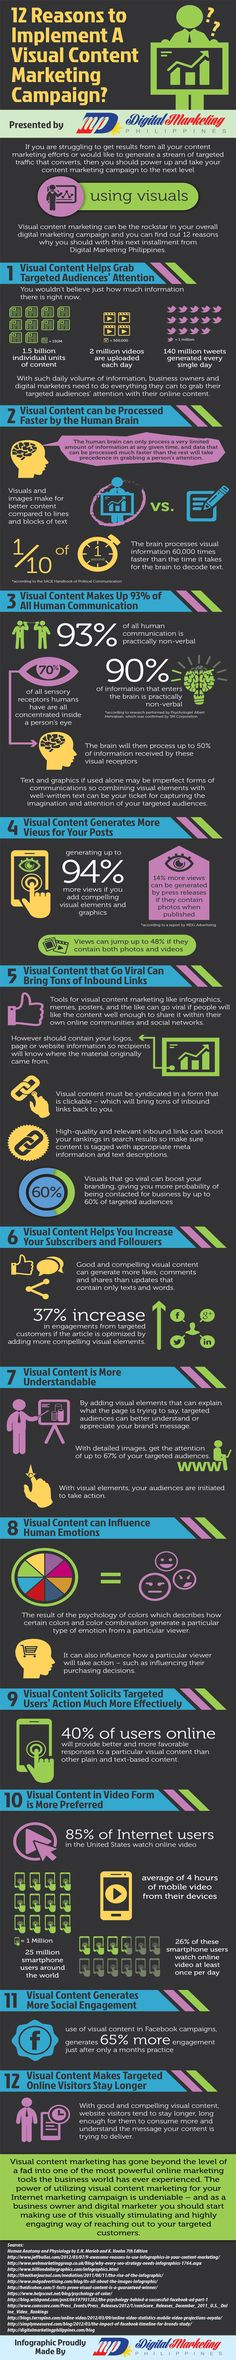 12 Reasons to Implement A Visual #ContentMarketing Campaign #Infographic #yvlcm